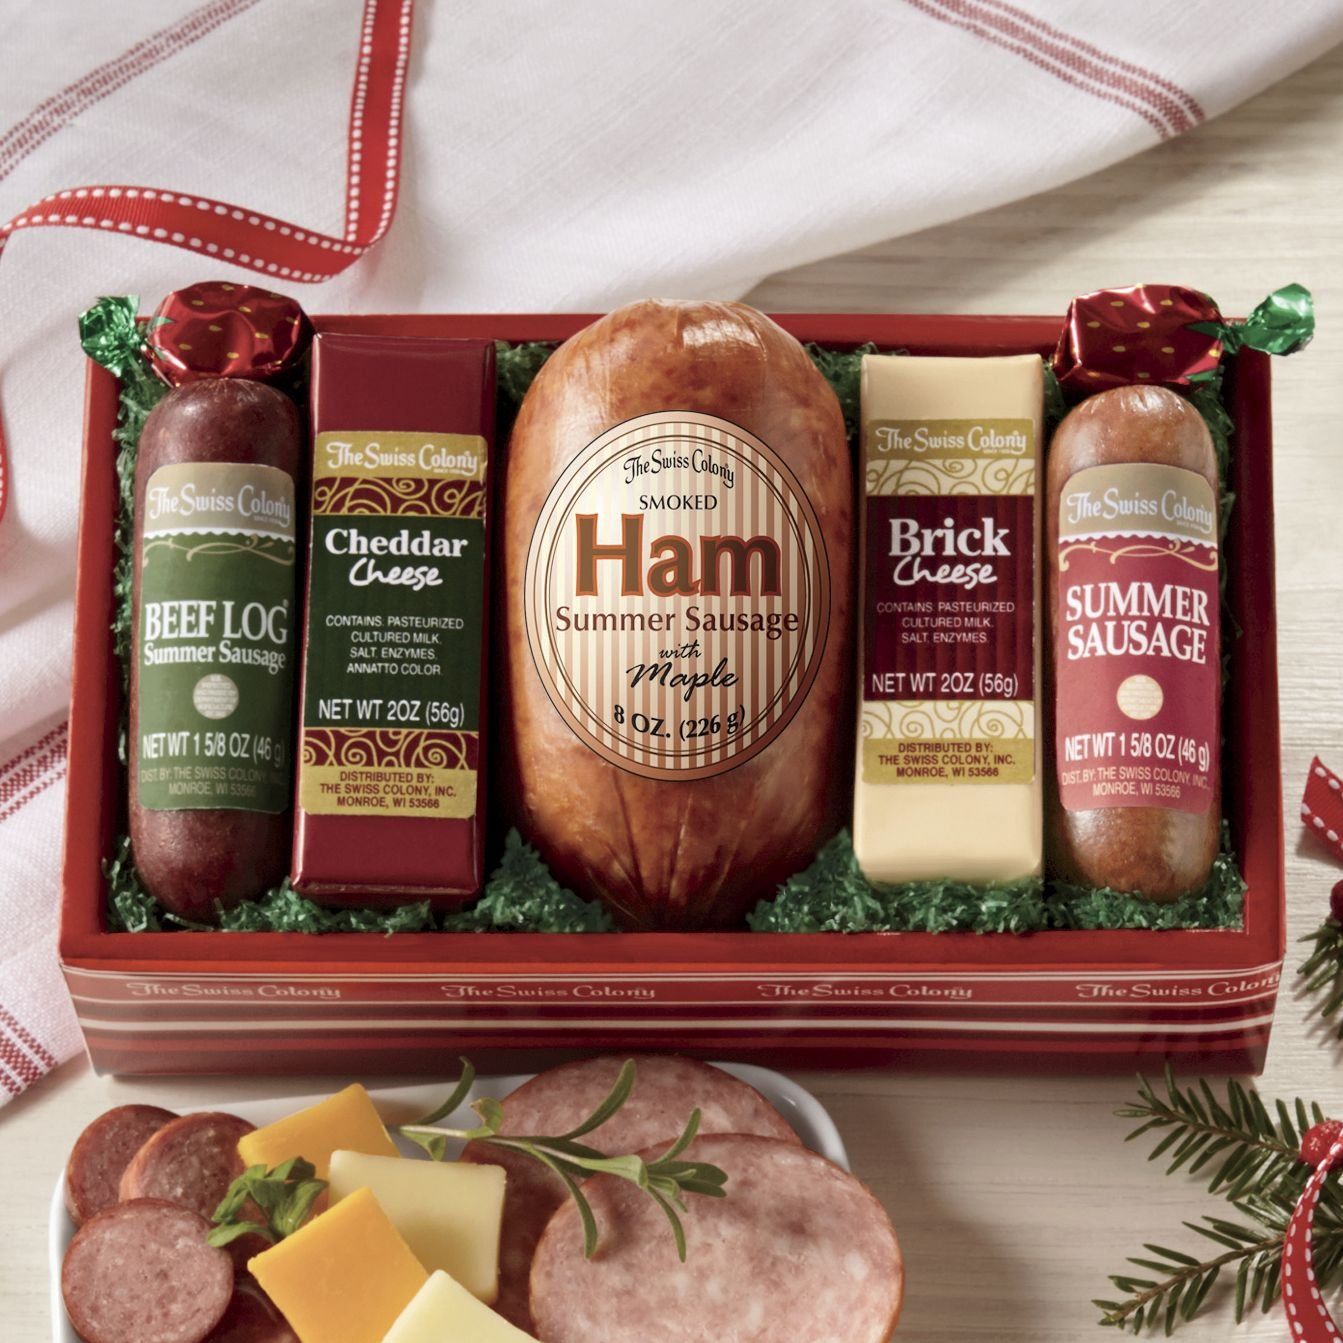 The Swiss Colony High Five Ham Gift Assortment from